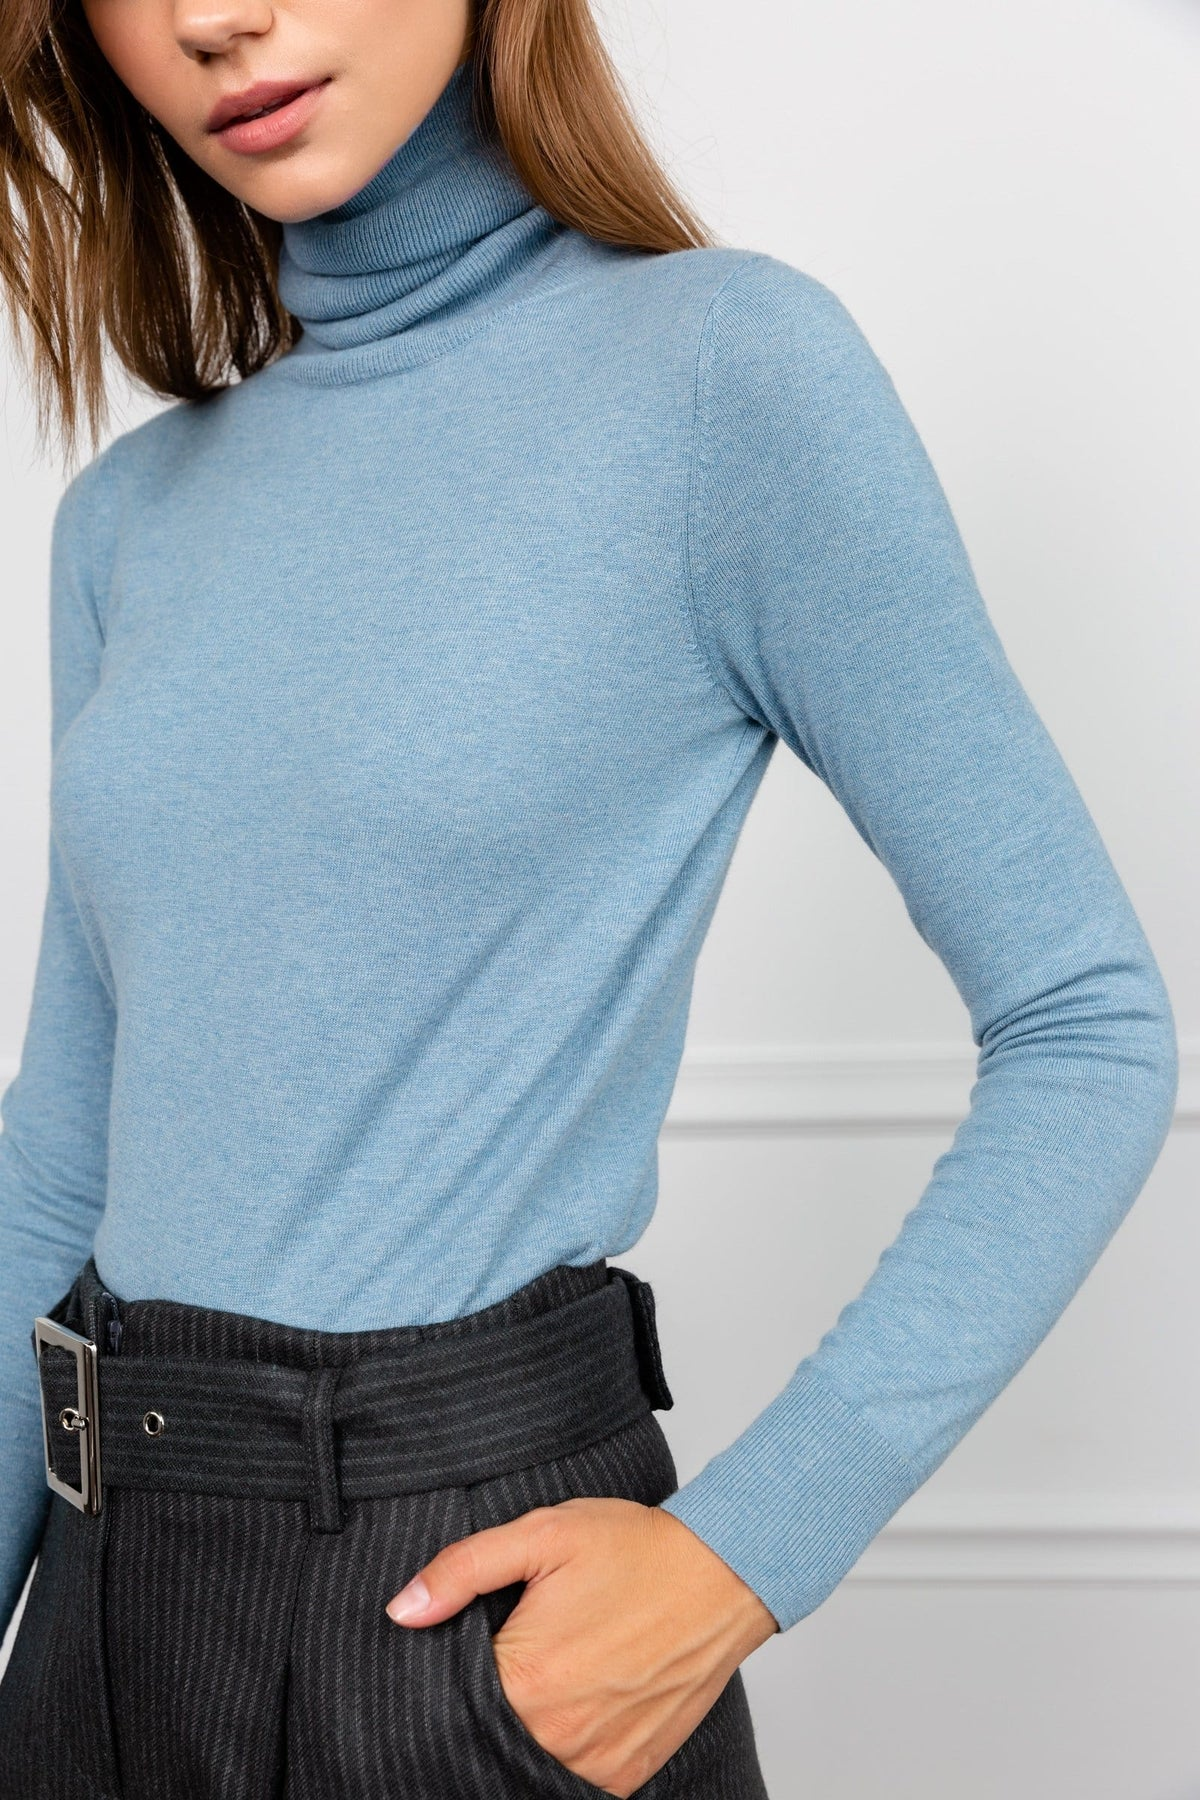 Denonia Lilac Turtleneck Top